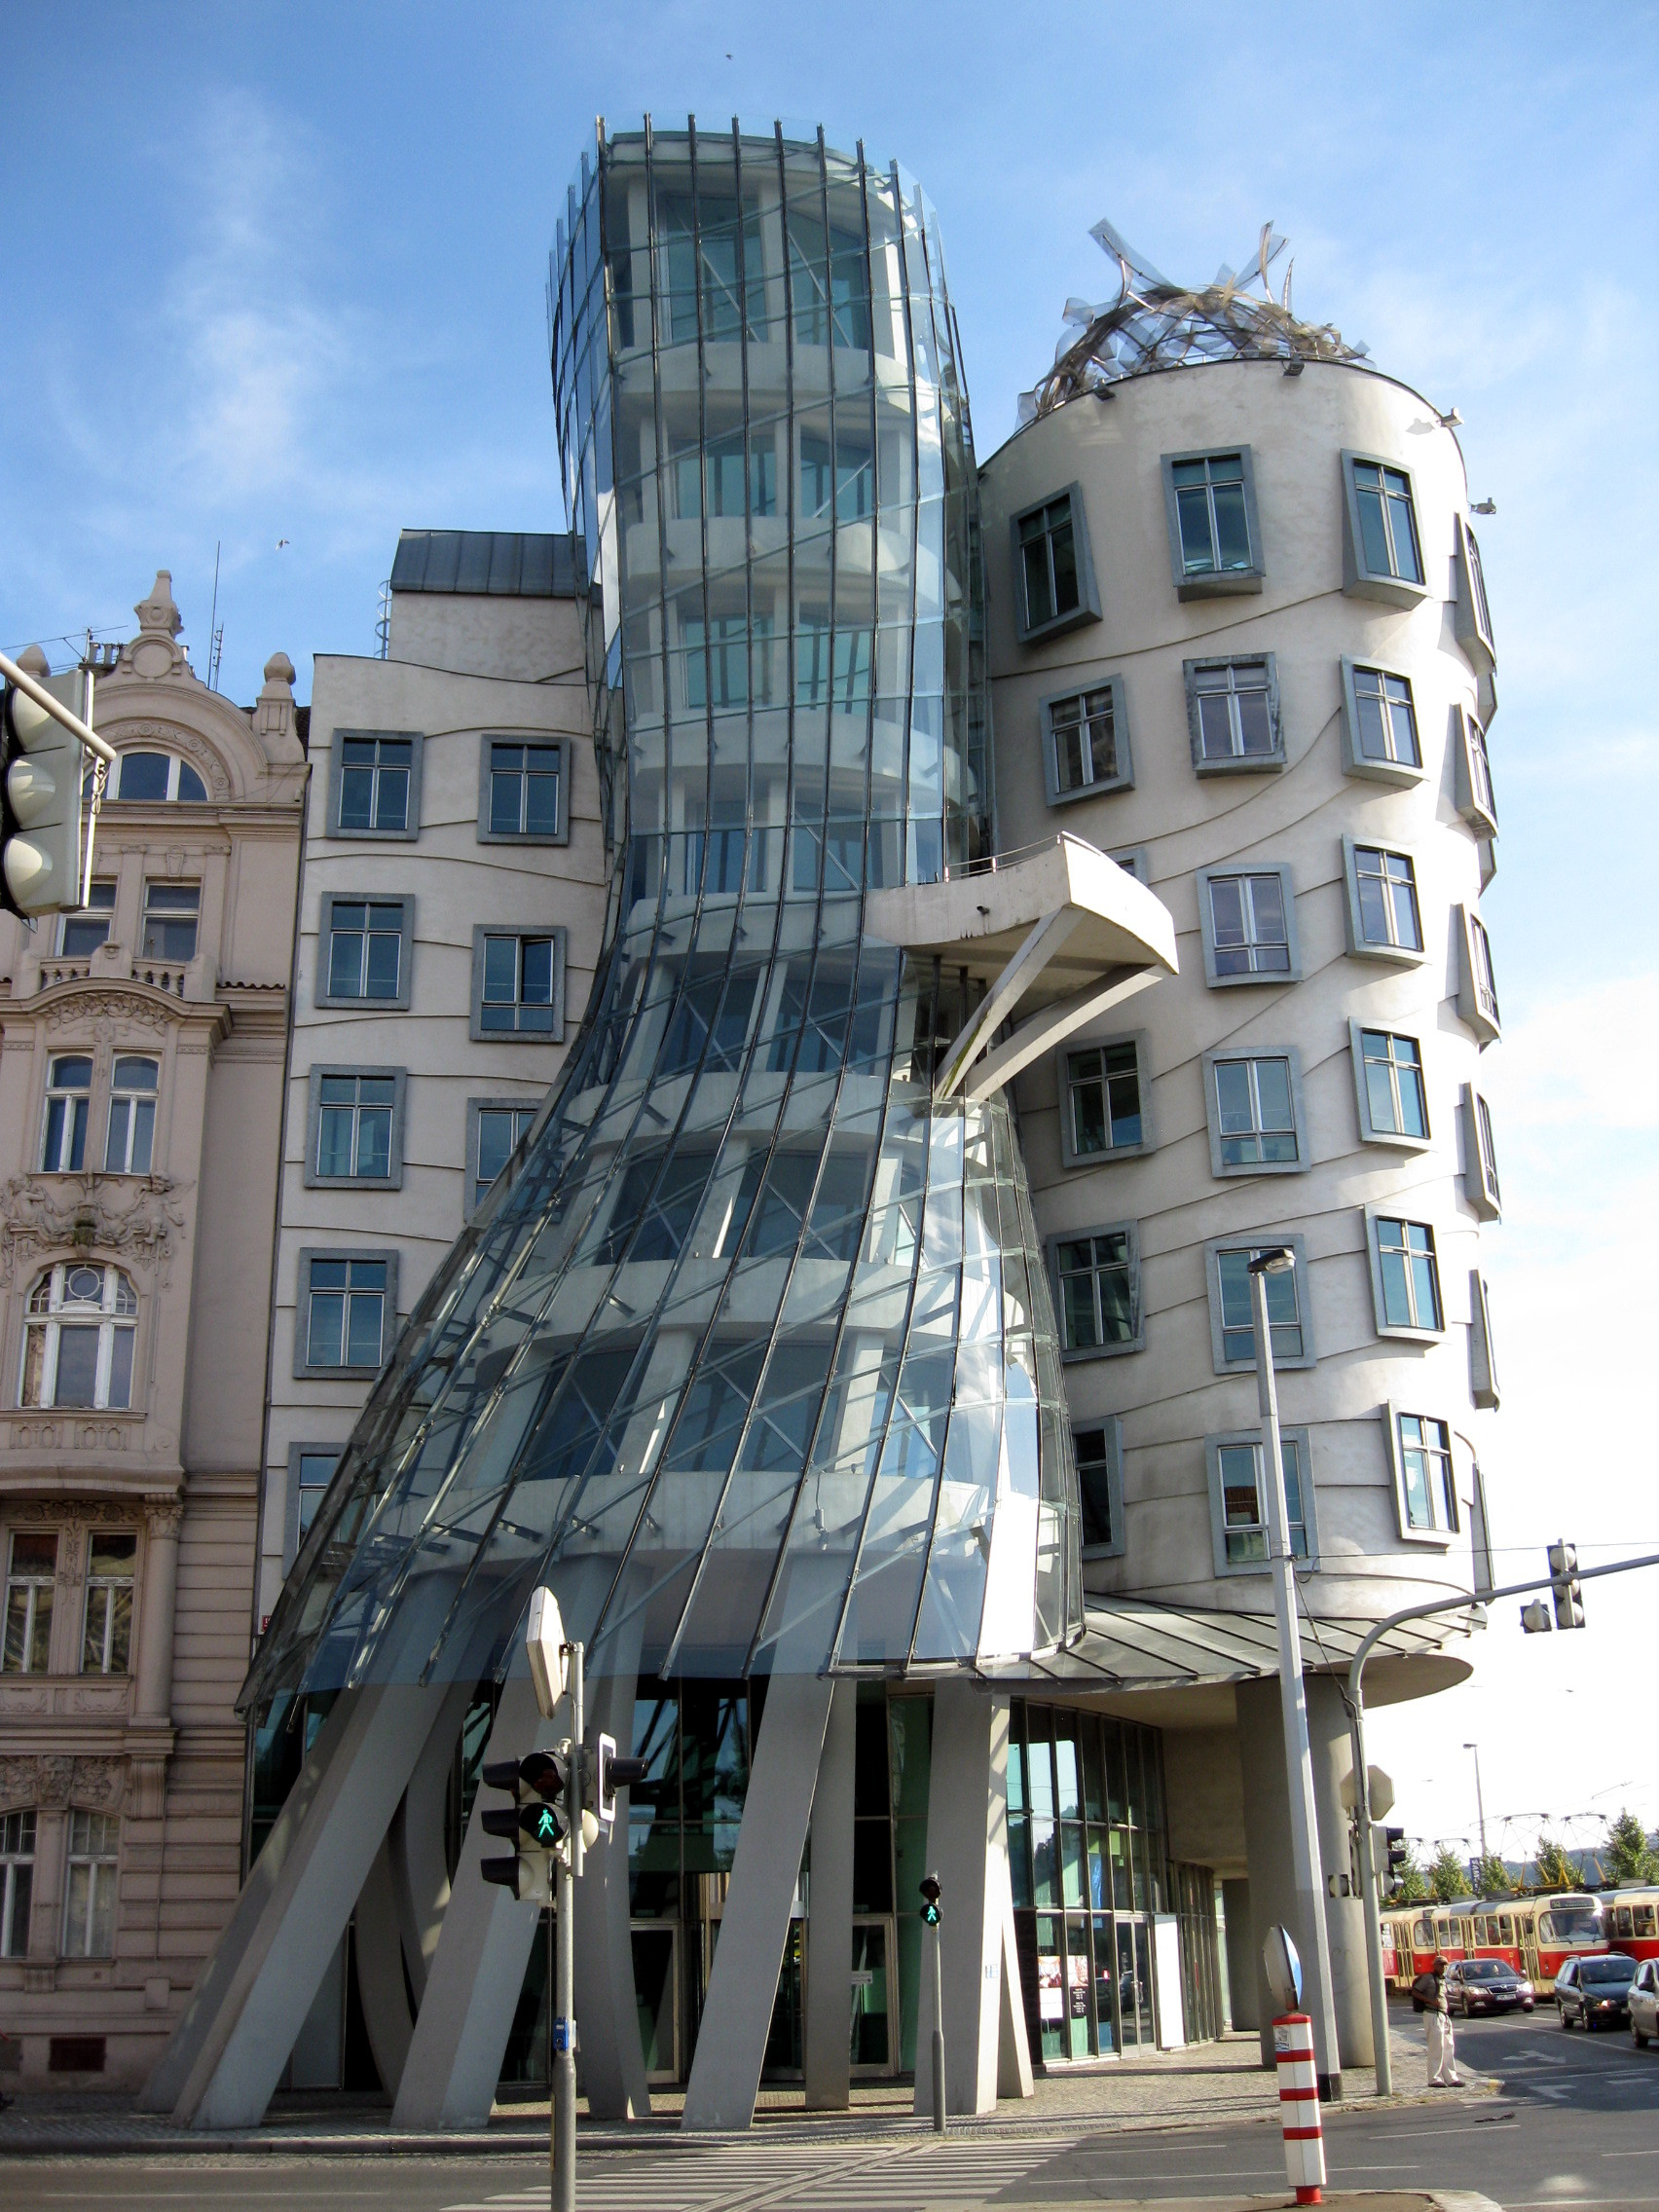 File Gehry Tanzendes Haus Wikimedia mons